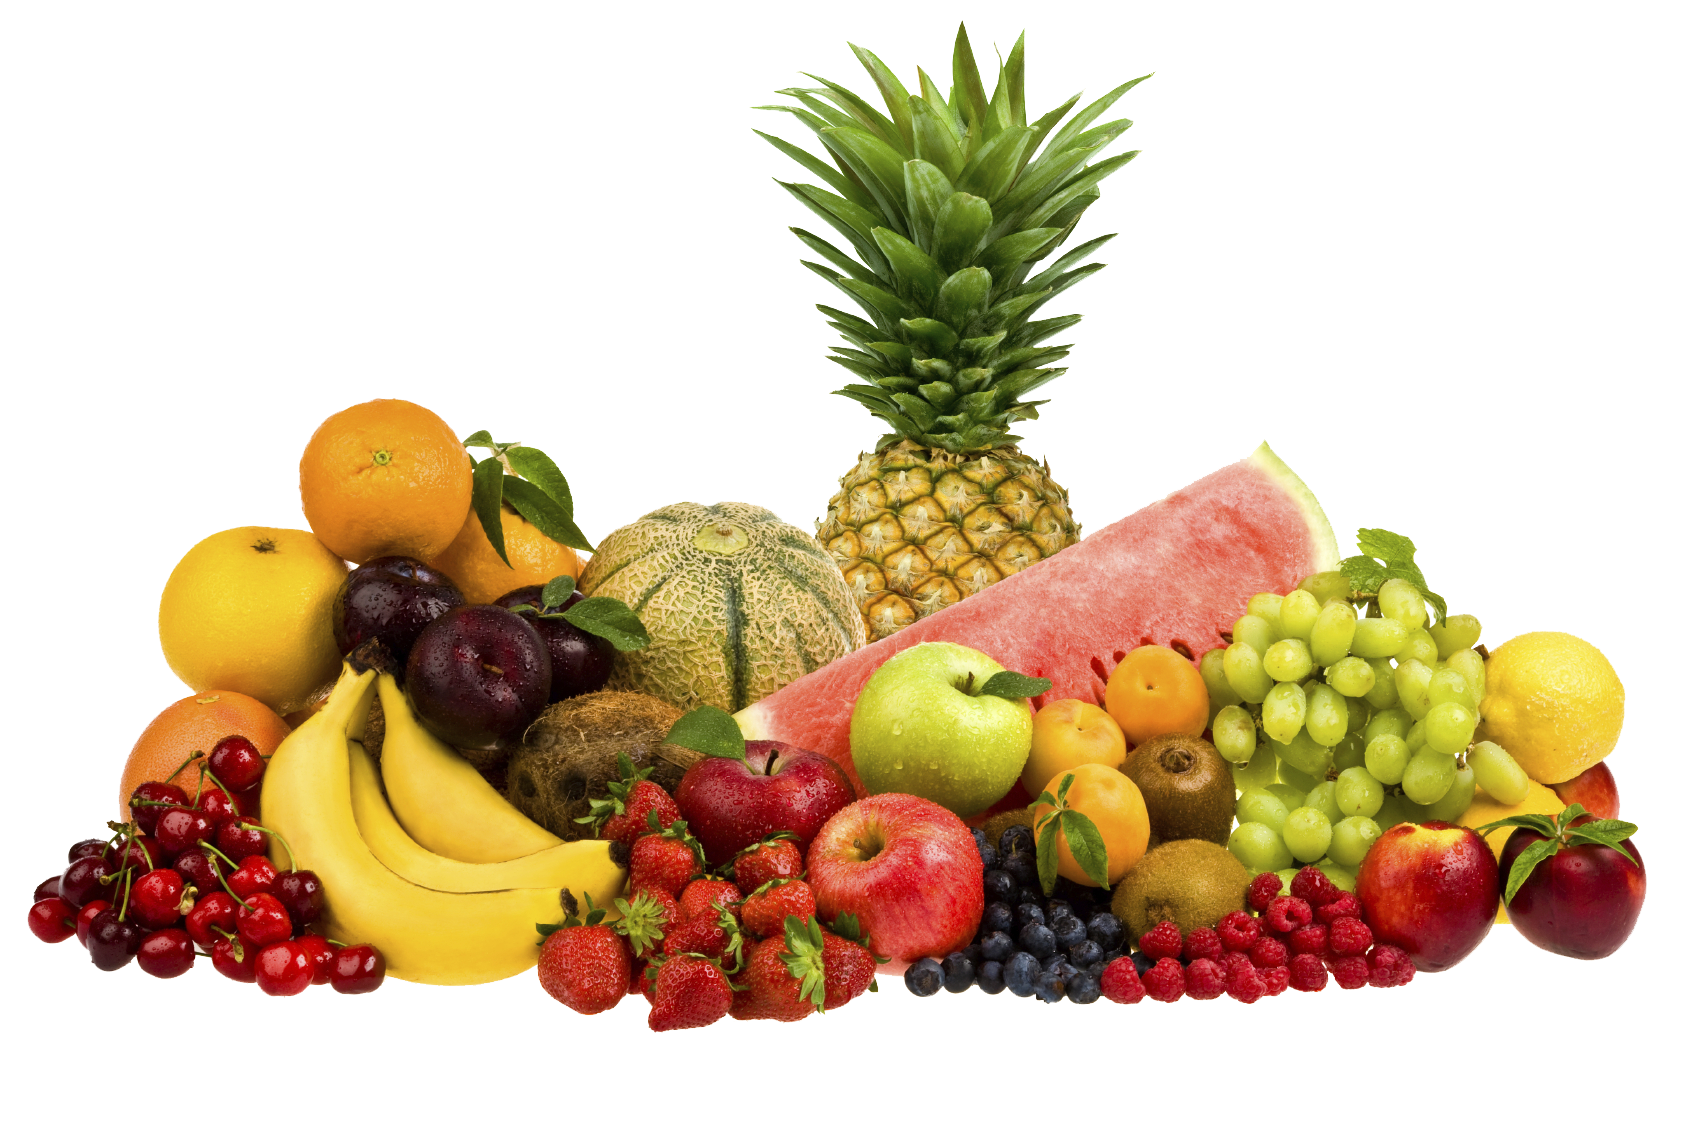 png royalty free stock Png images pluspng picture. Transparent fruit.